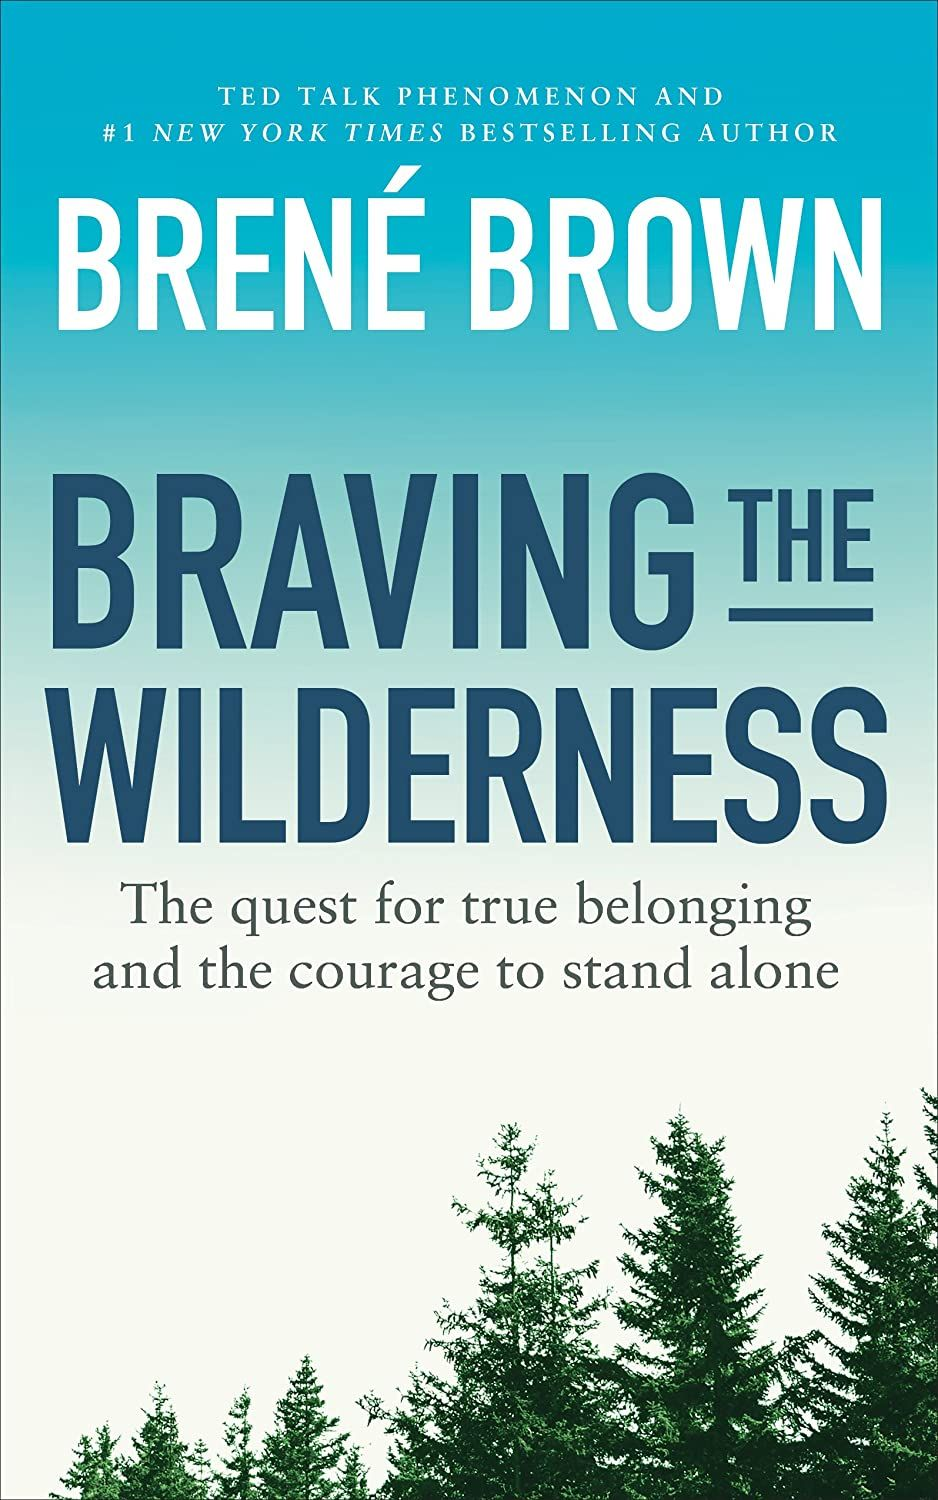 Braving The Wilderness The Quest For True Belonging And The Courage To Stand Alone Kindle Edition By Brow In 2020 Brene Brown Books Book Recommendations Brene Brown